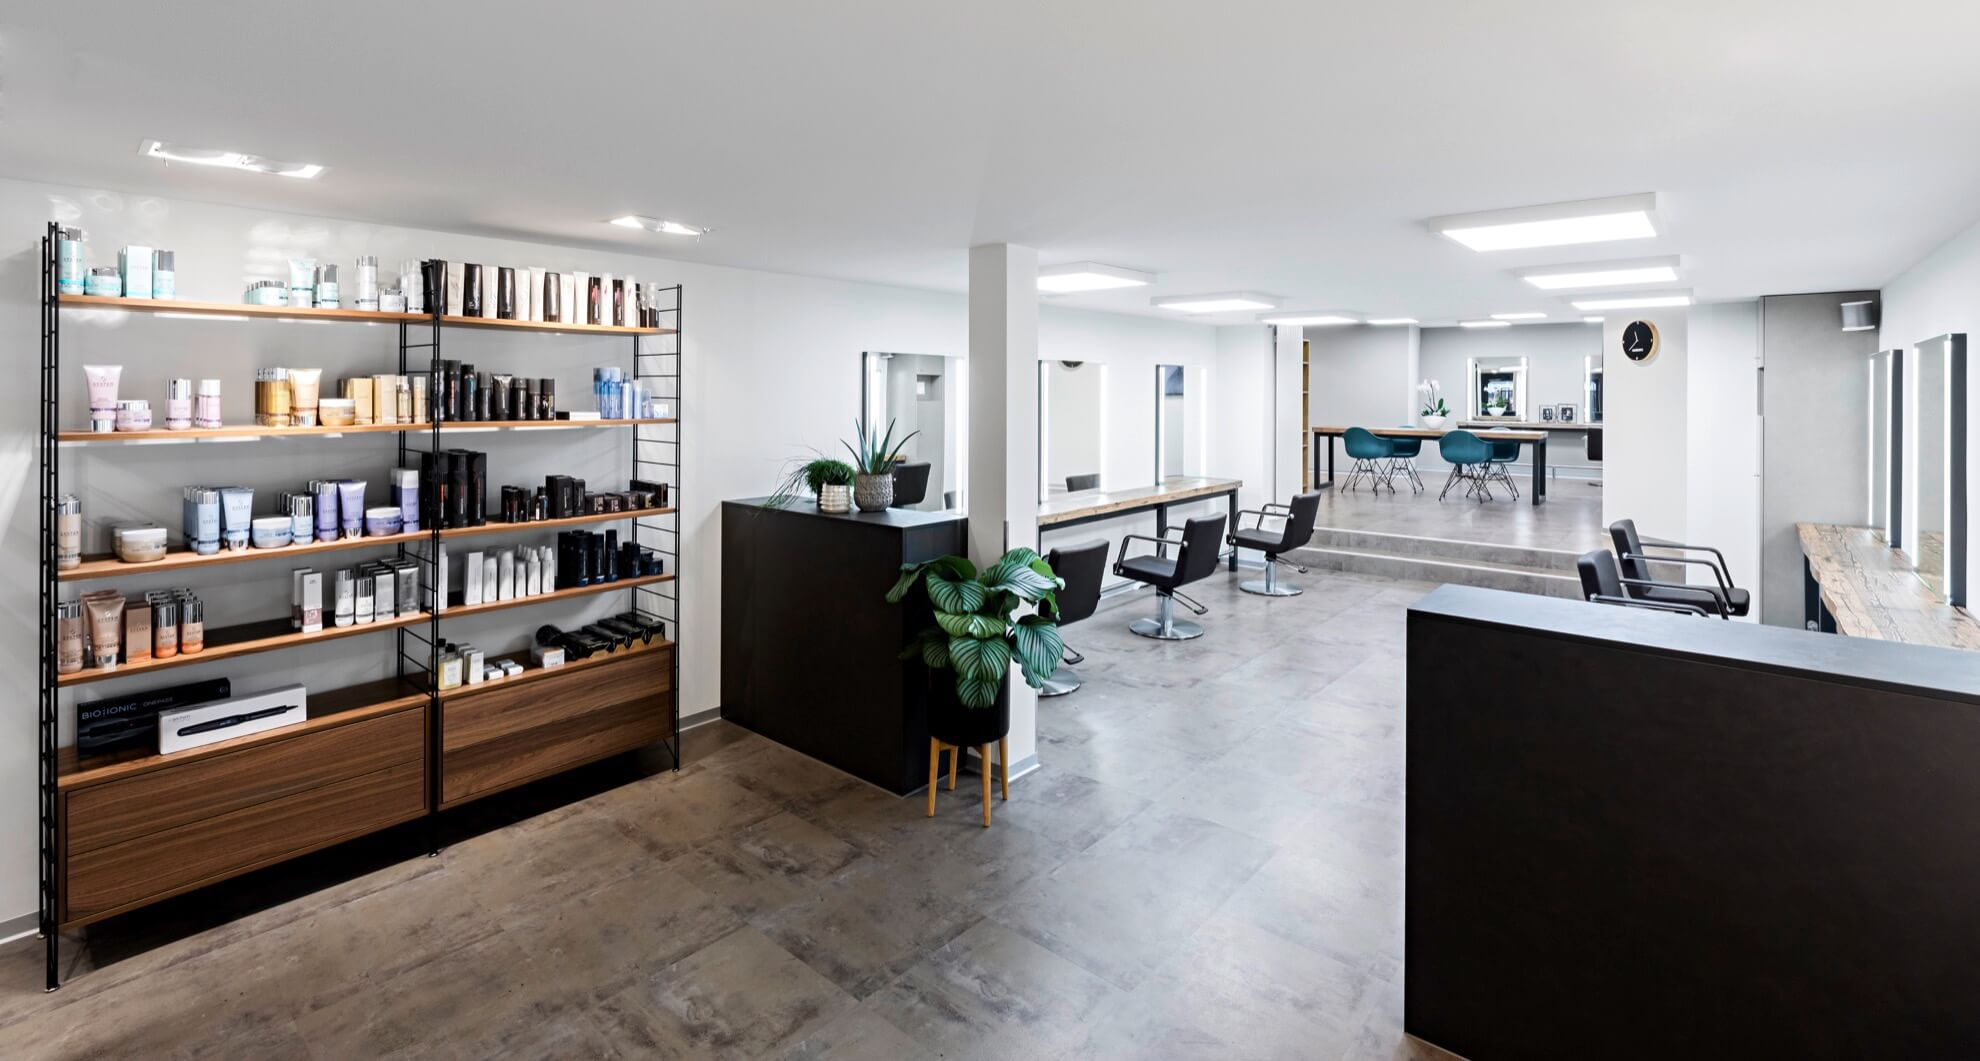 hairdepartment_ambiente_bmd8953.jpg